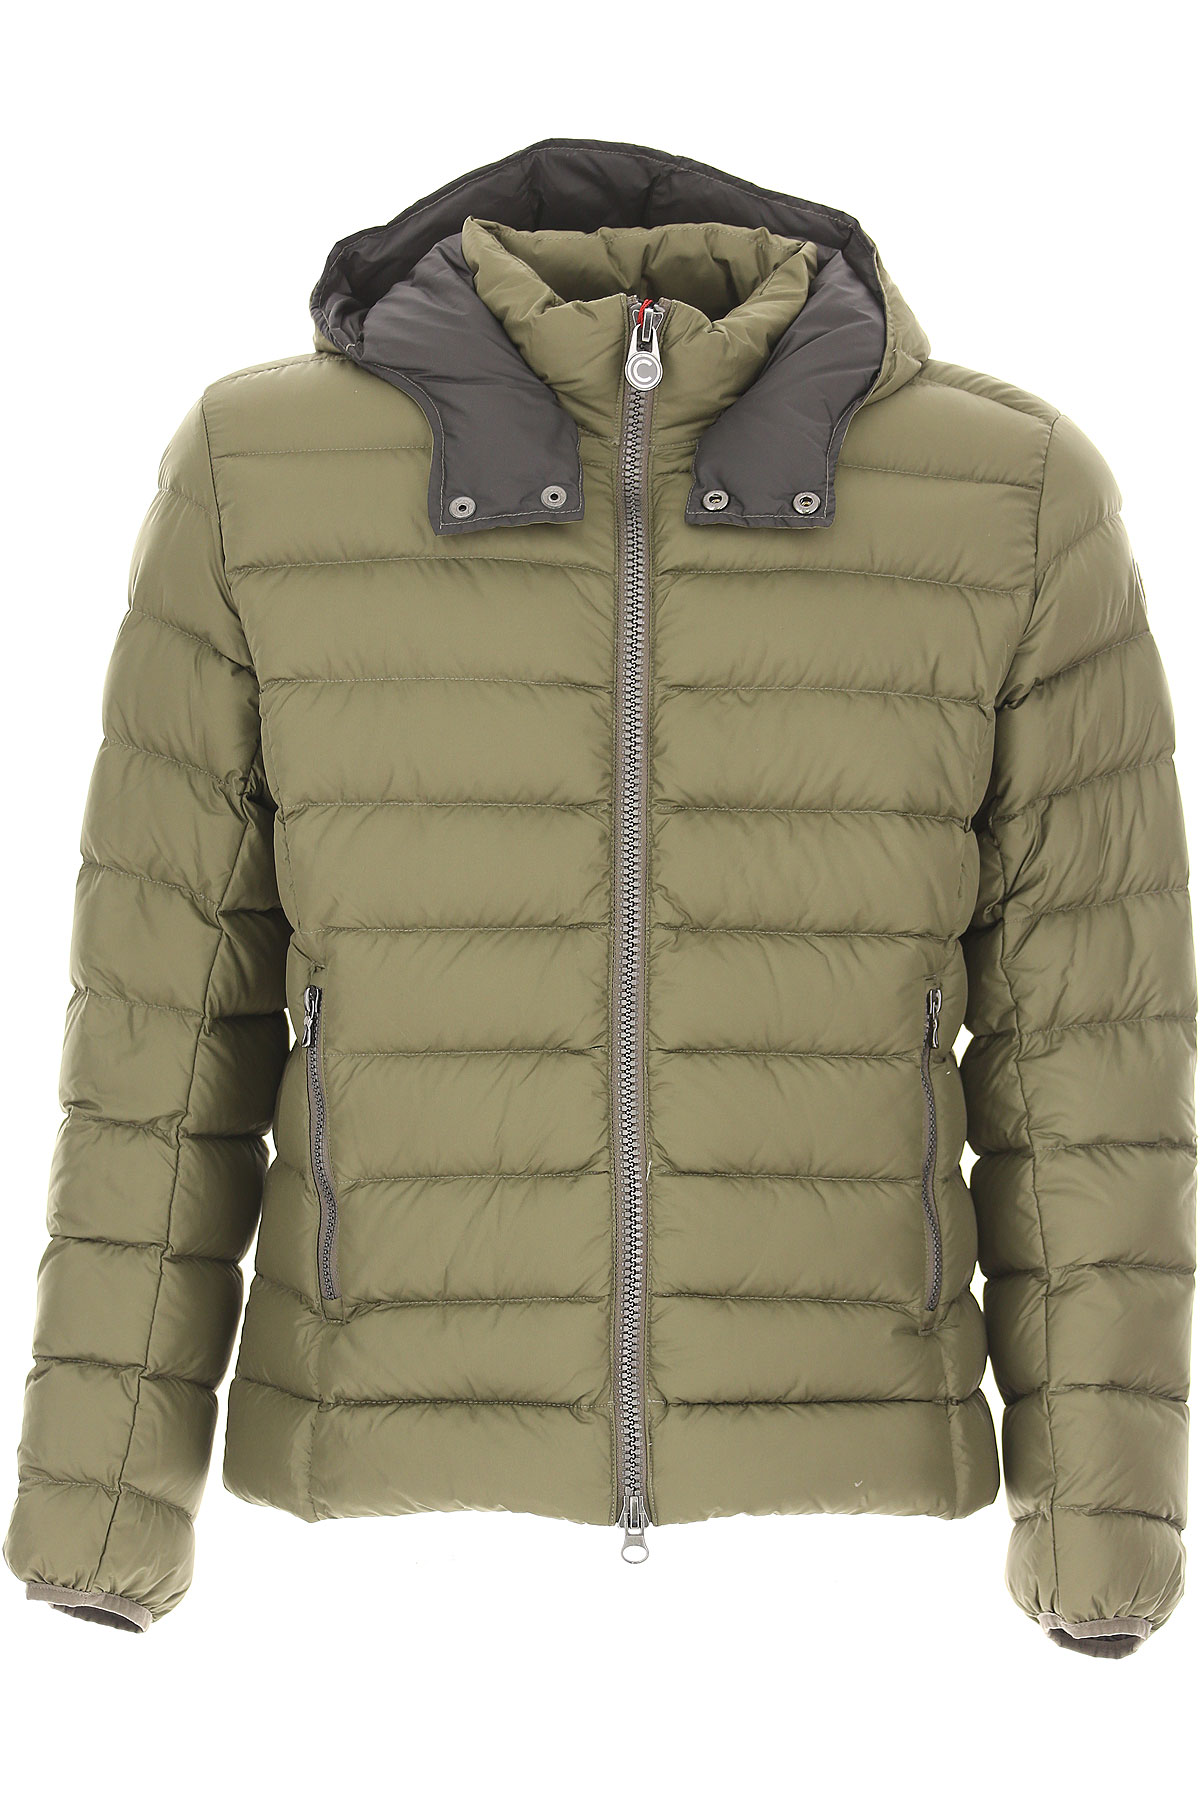 Colmar Down Jacket for Men, Puffer Ski Jacket On Sale, Military Green, Down, 2017, XL XXL USA-420760